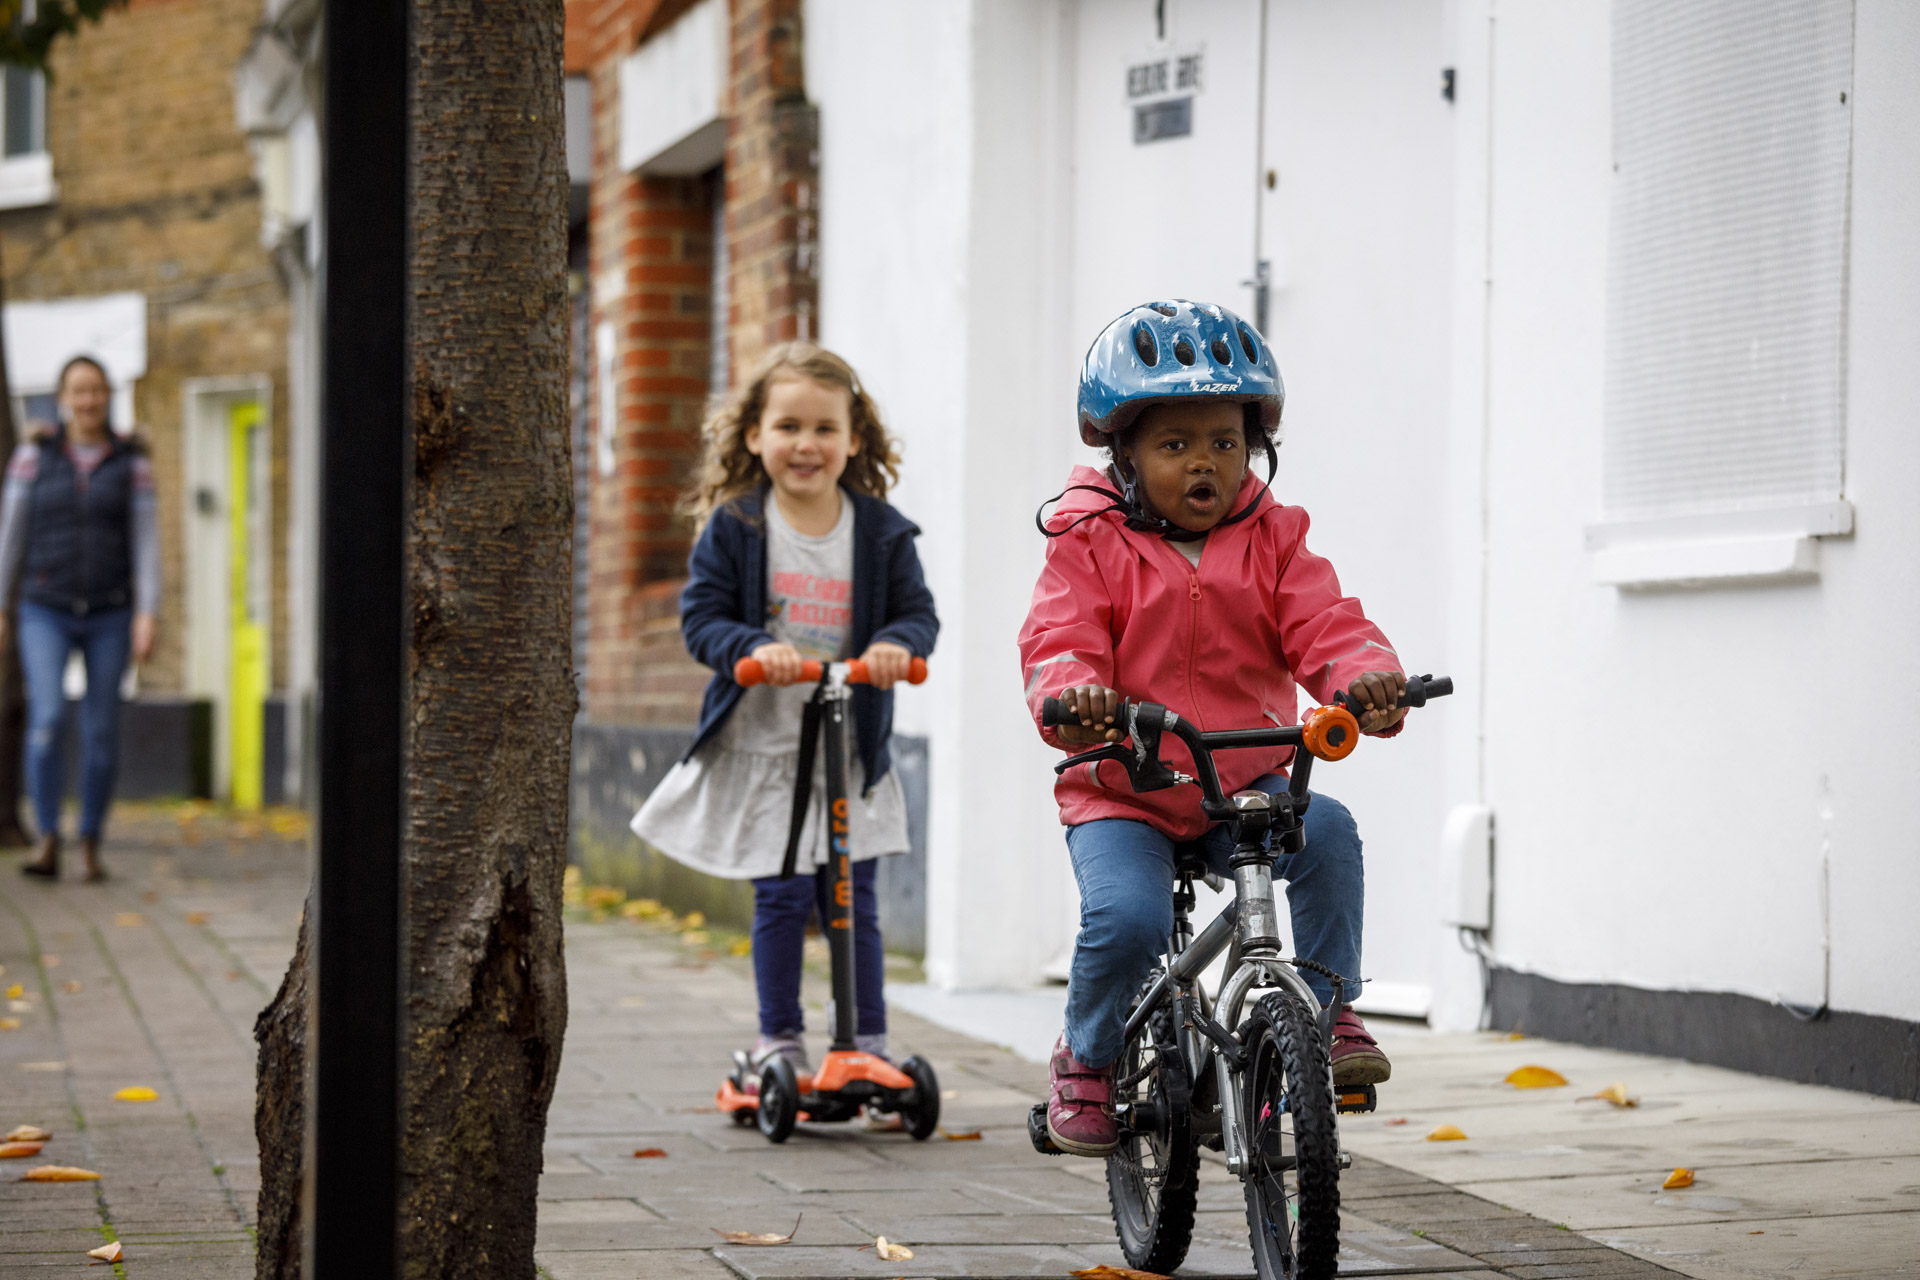 A young child on a bike rides towards the camera with a look of concentration on their face. Another child rides behind on a scooter.